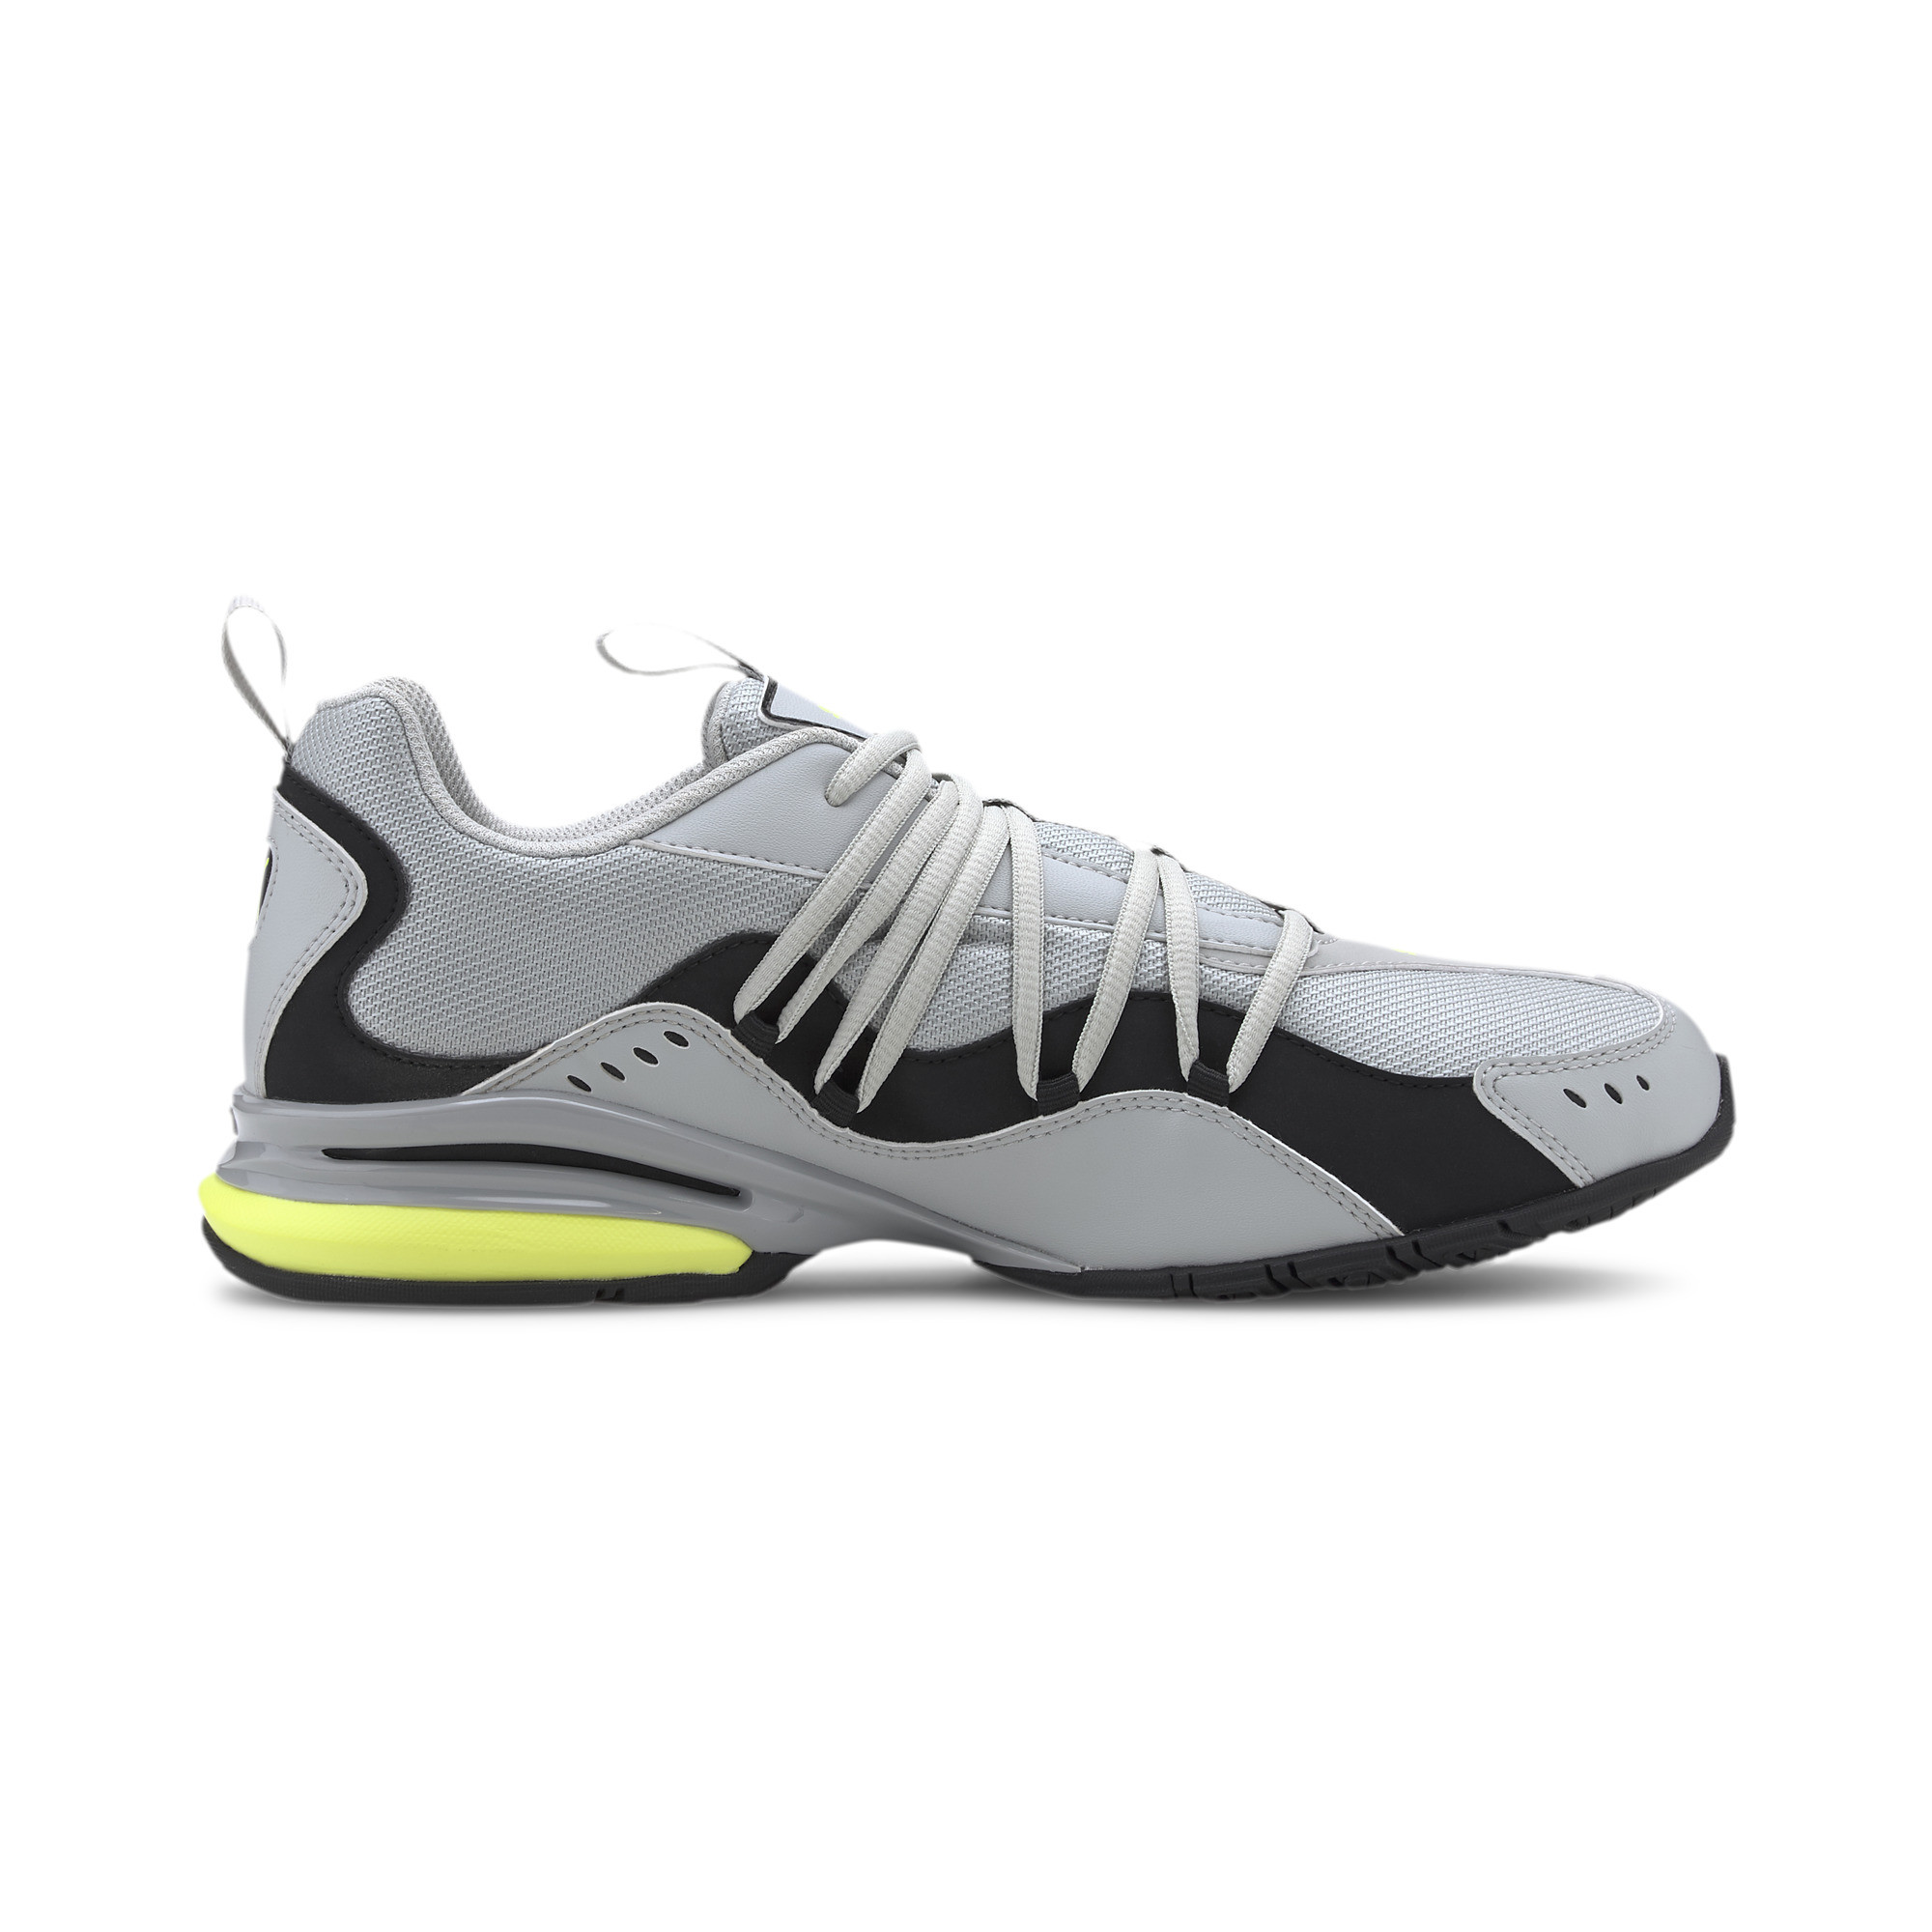 PUMA-Men-039-s-Silverion-Running-Shoes thumbnail 26